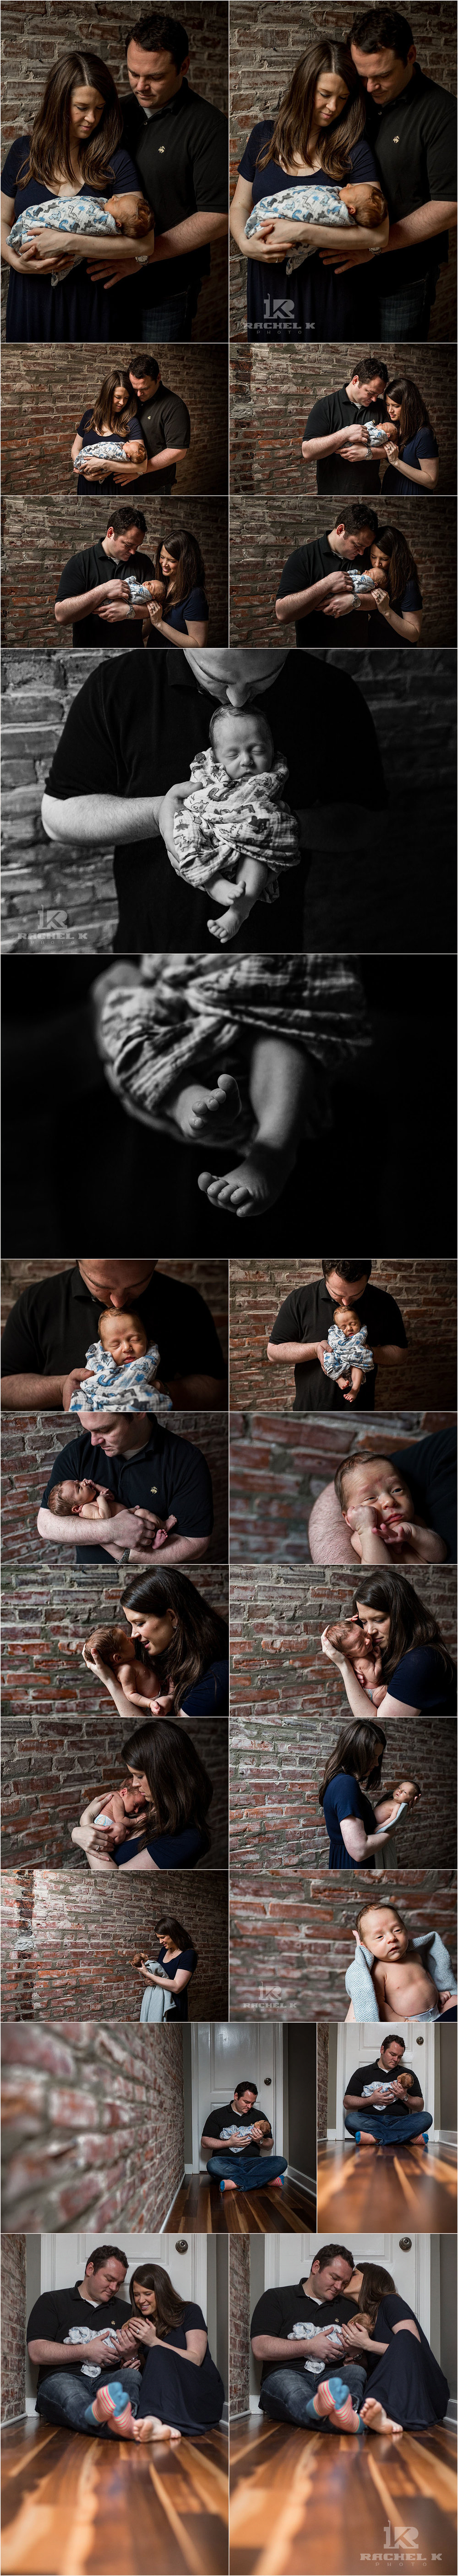 Northern Virginia newborn session by Rachel K Photo